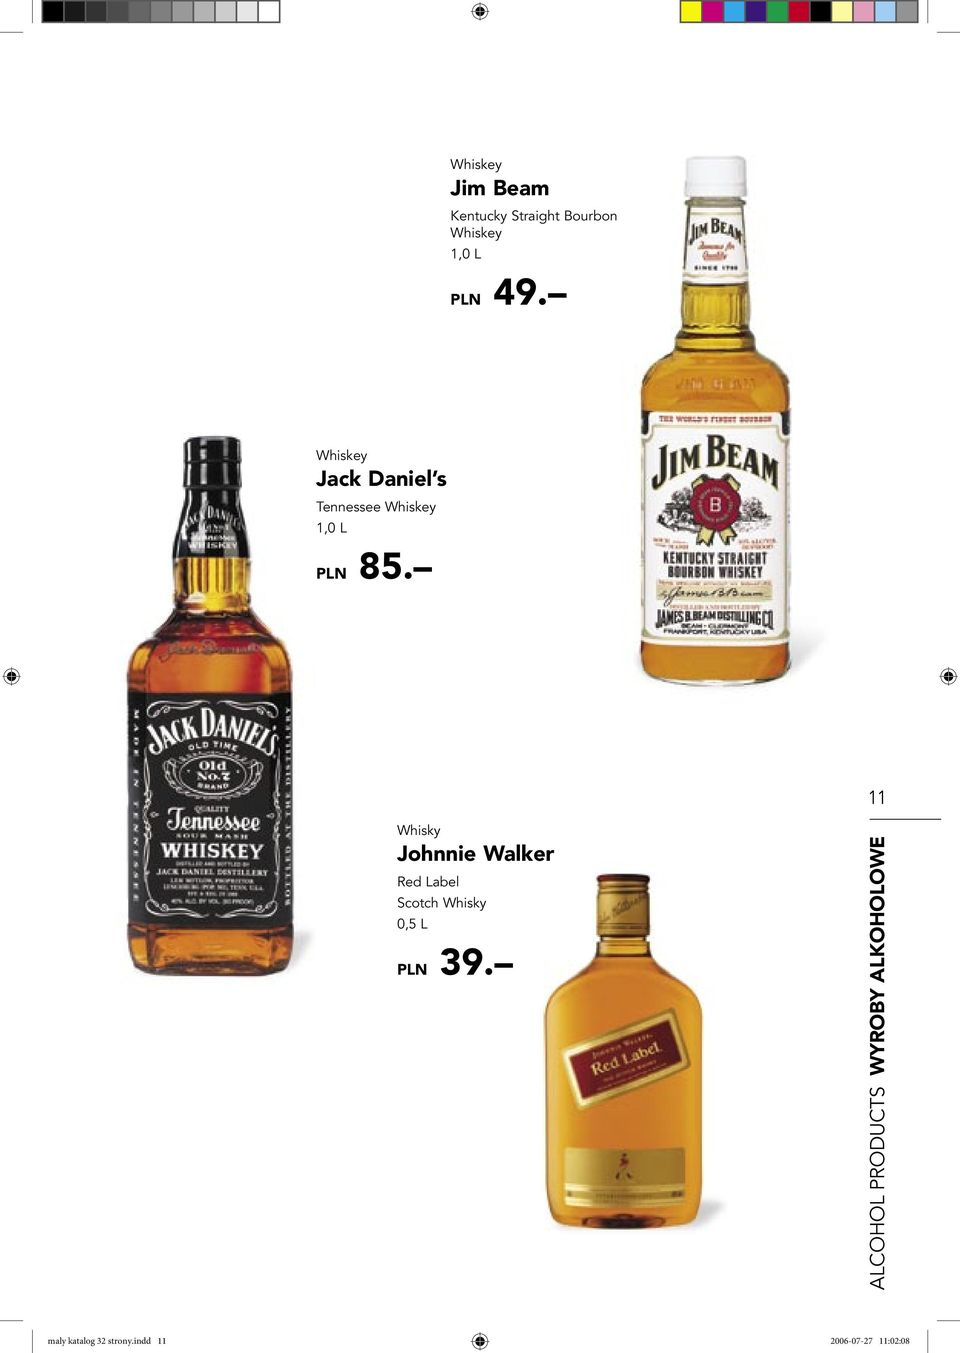 11 Whisky Johnnie Walker Red Label Scotch Whisky 0,5 L PLN 39.